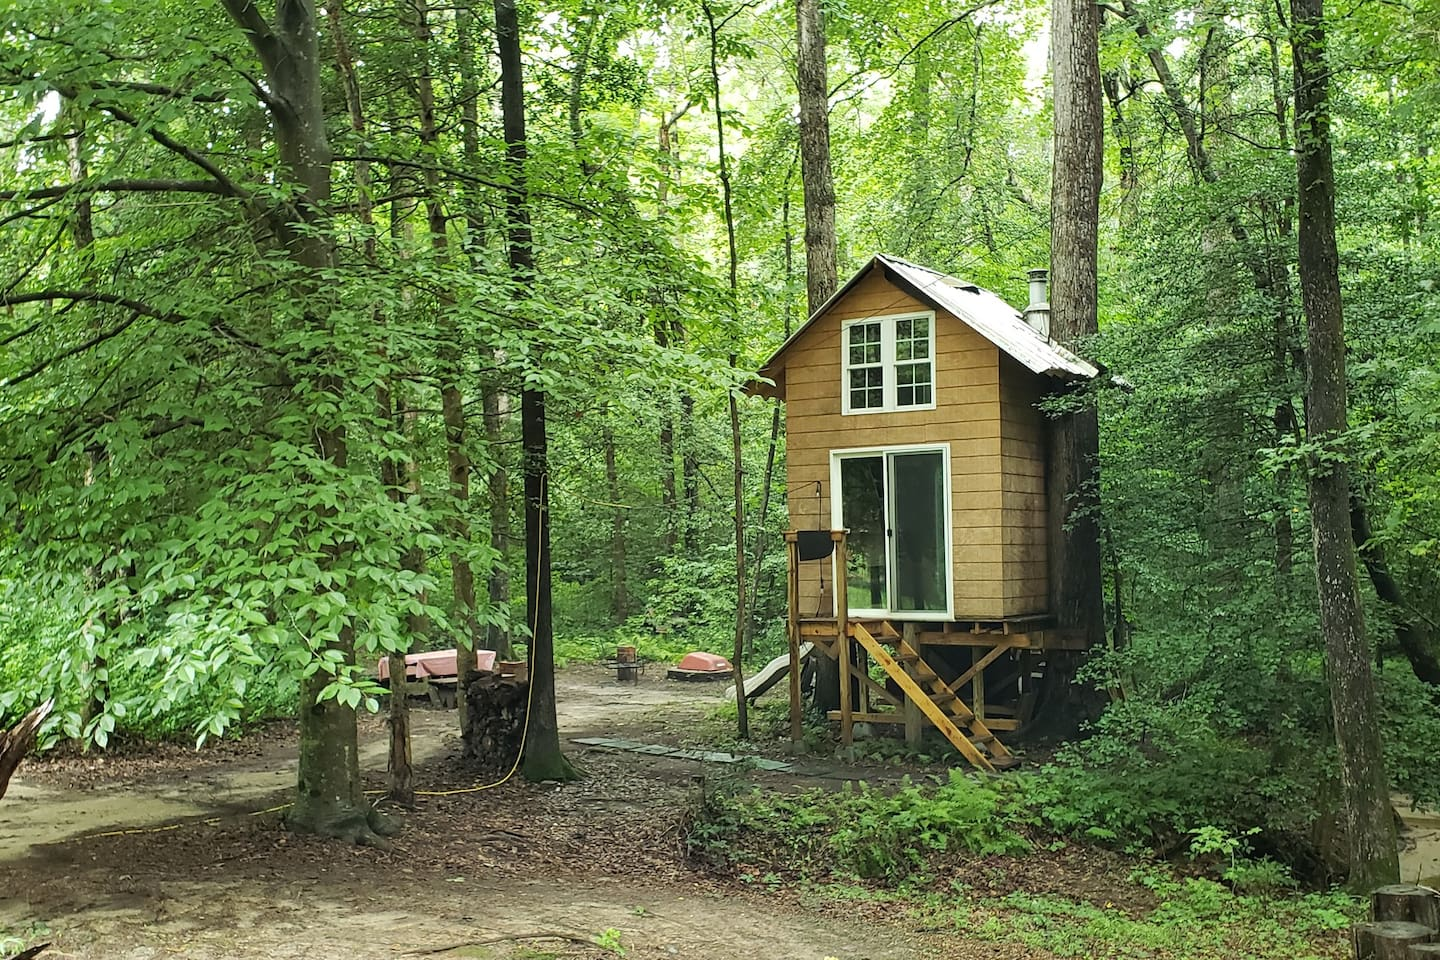 This tiny house started as just a platform with a slide, as a fort and playground for our children. Over the years, it grew just like they did.